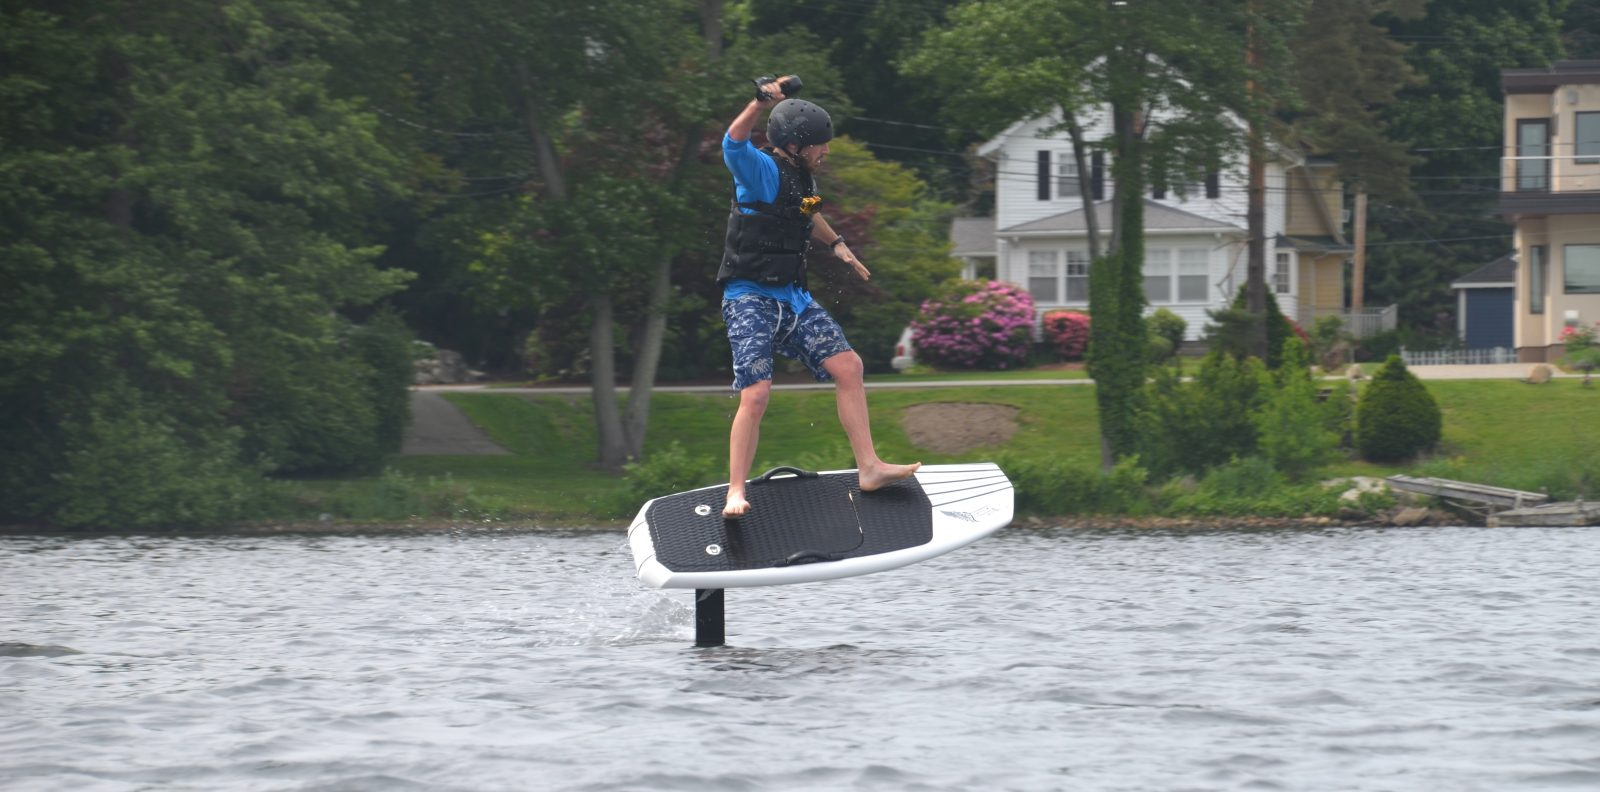 First Ride: Lift eFoil electric hydrofoil board literally flies above water